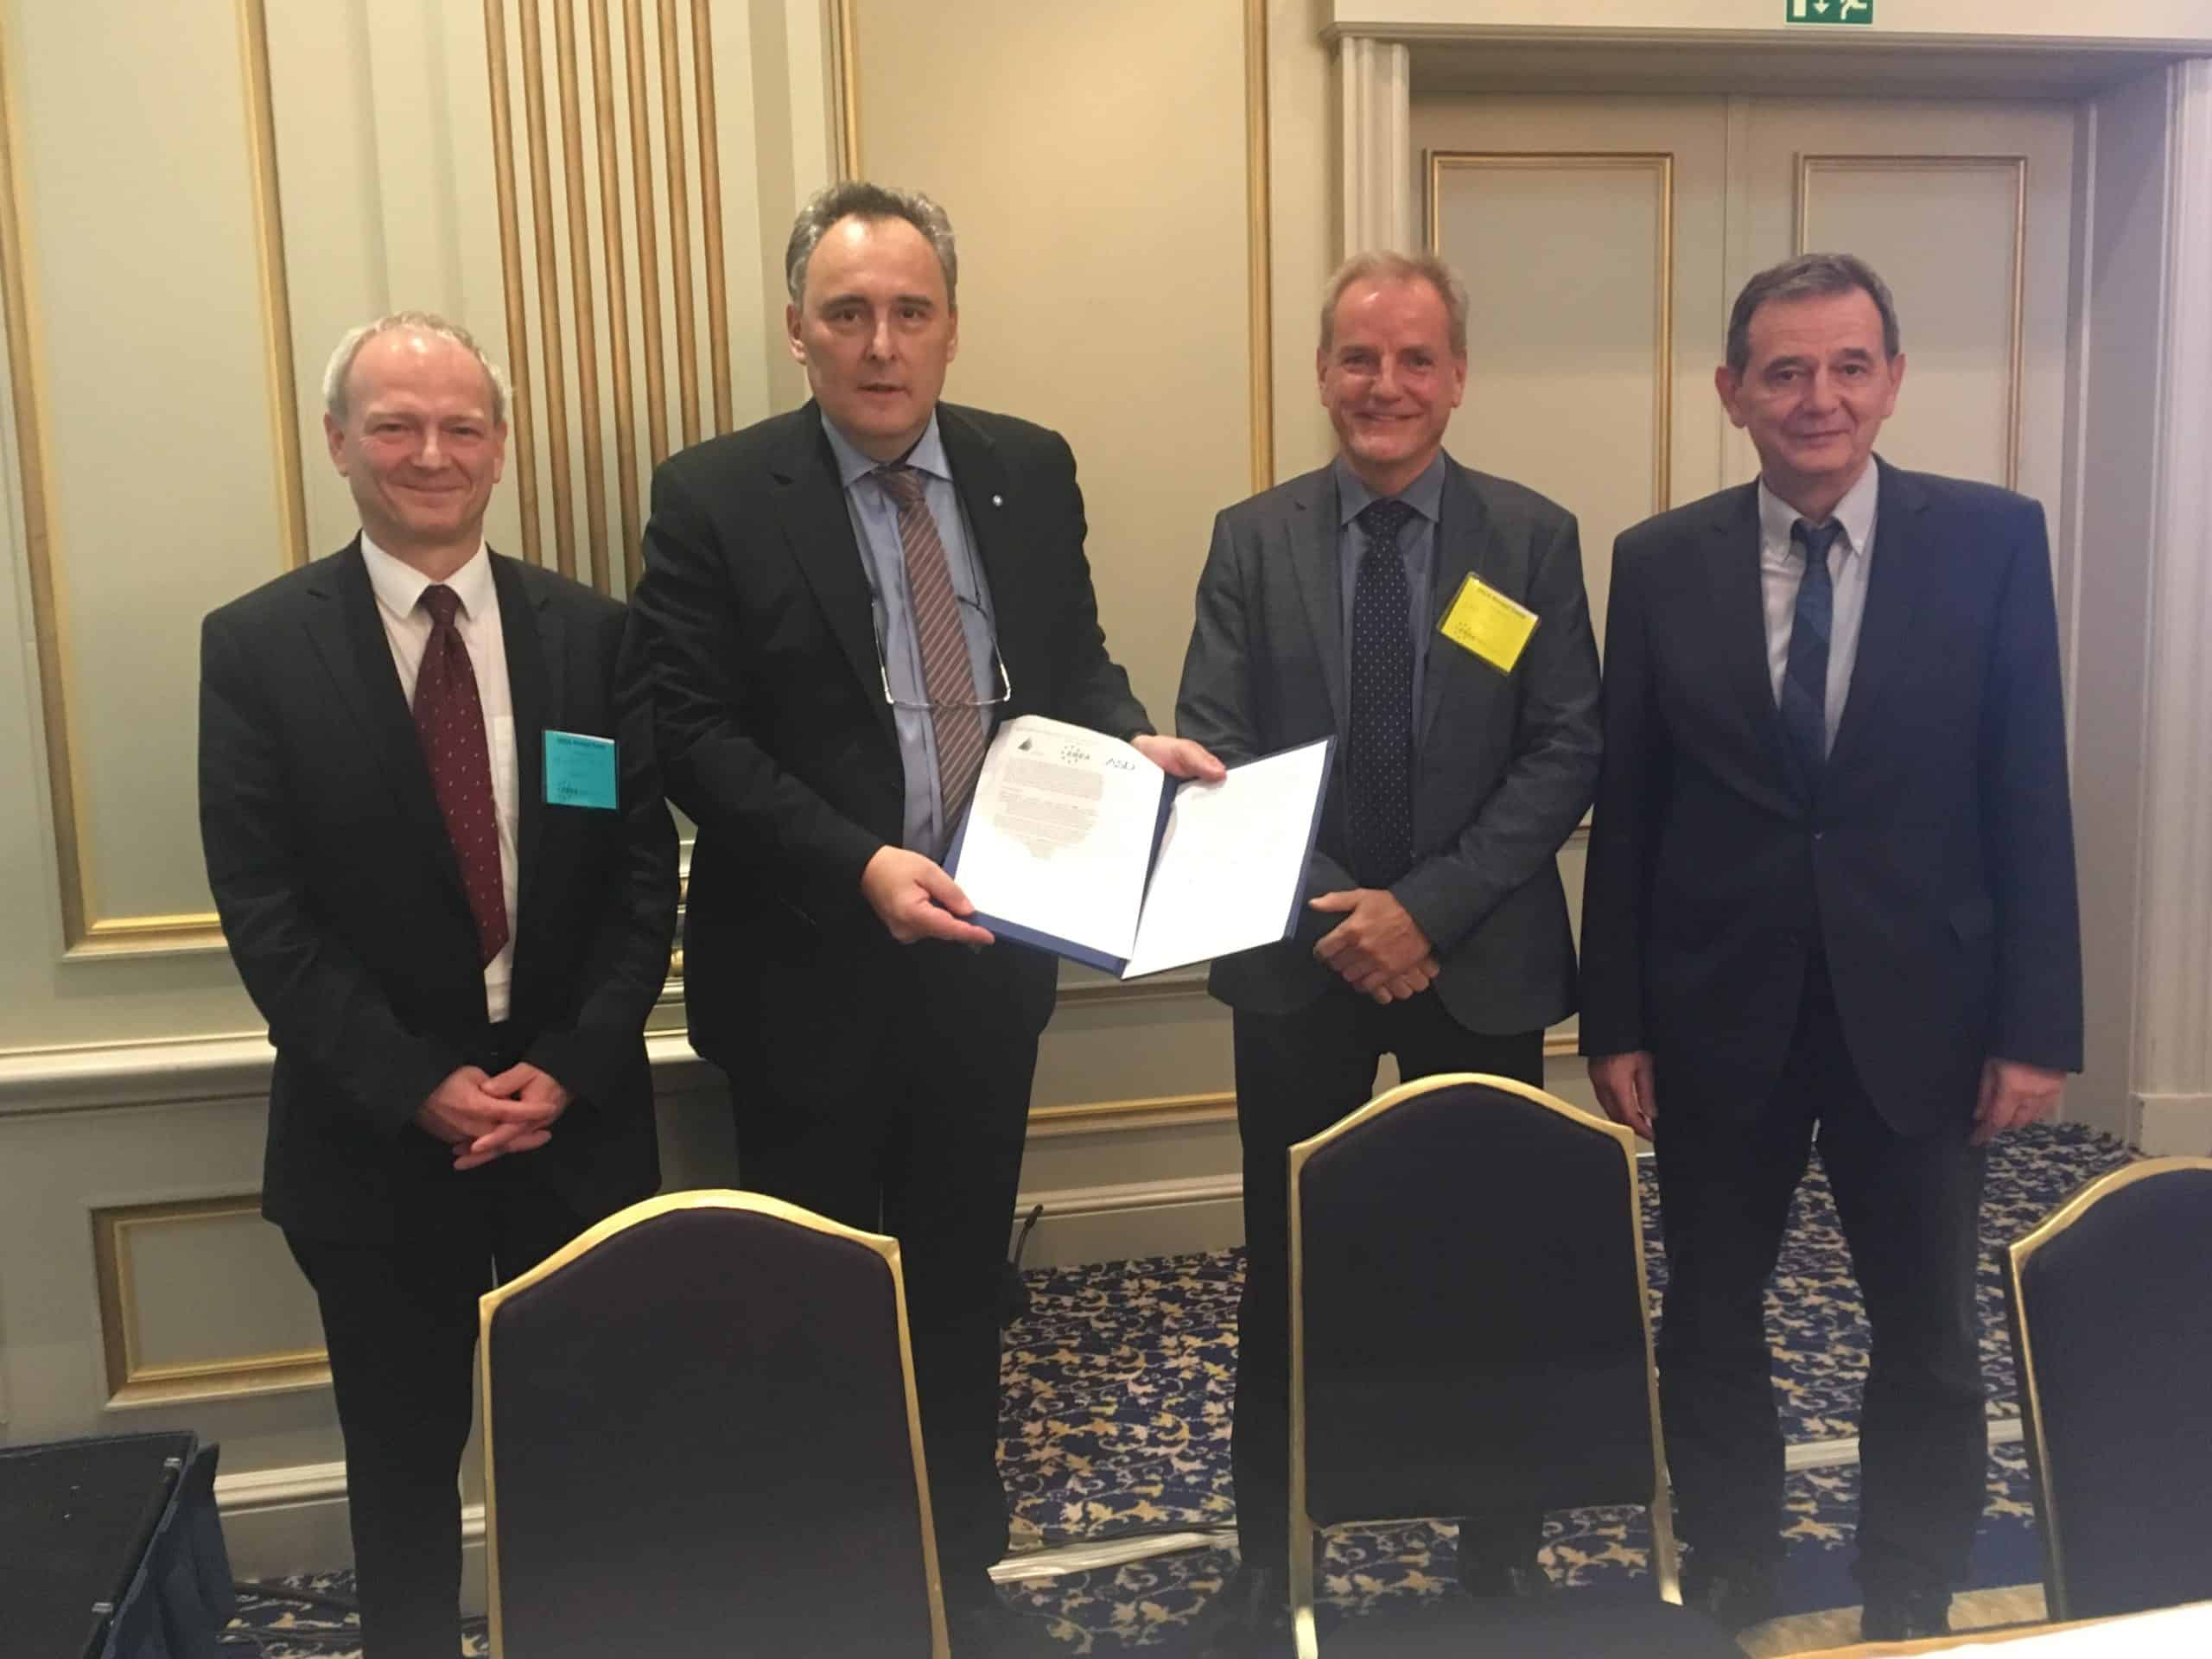 EREA, EASN and ASD sign joint statement on Aeronautics Research and Innovation in Horizon Europe